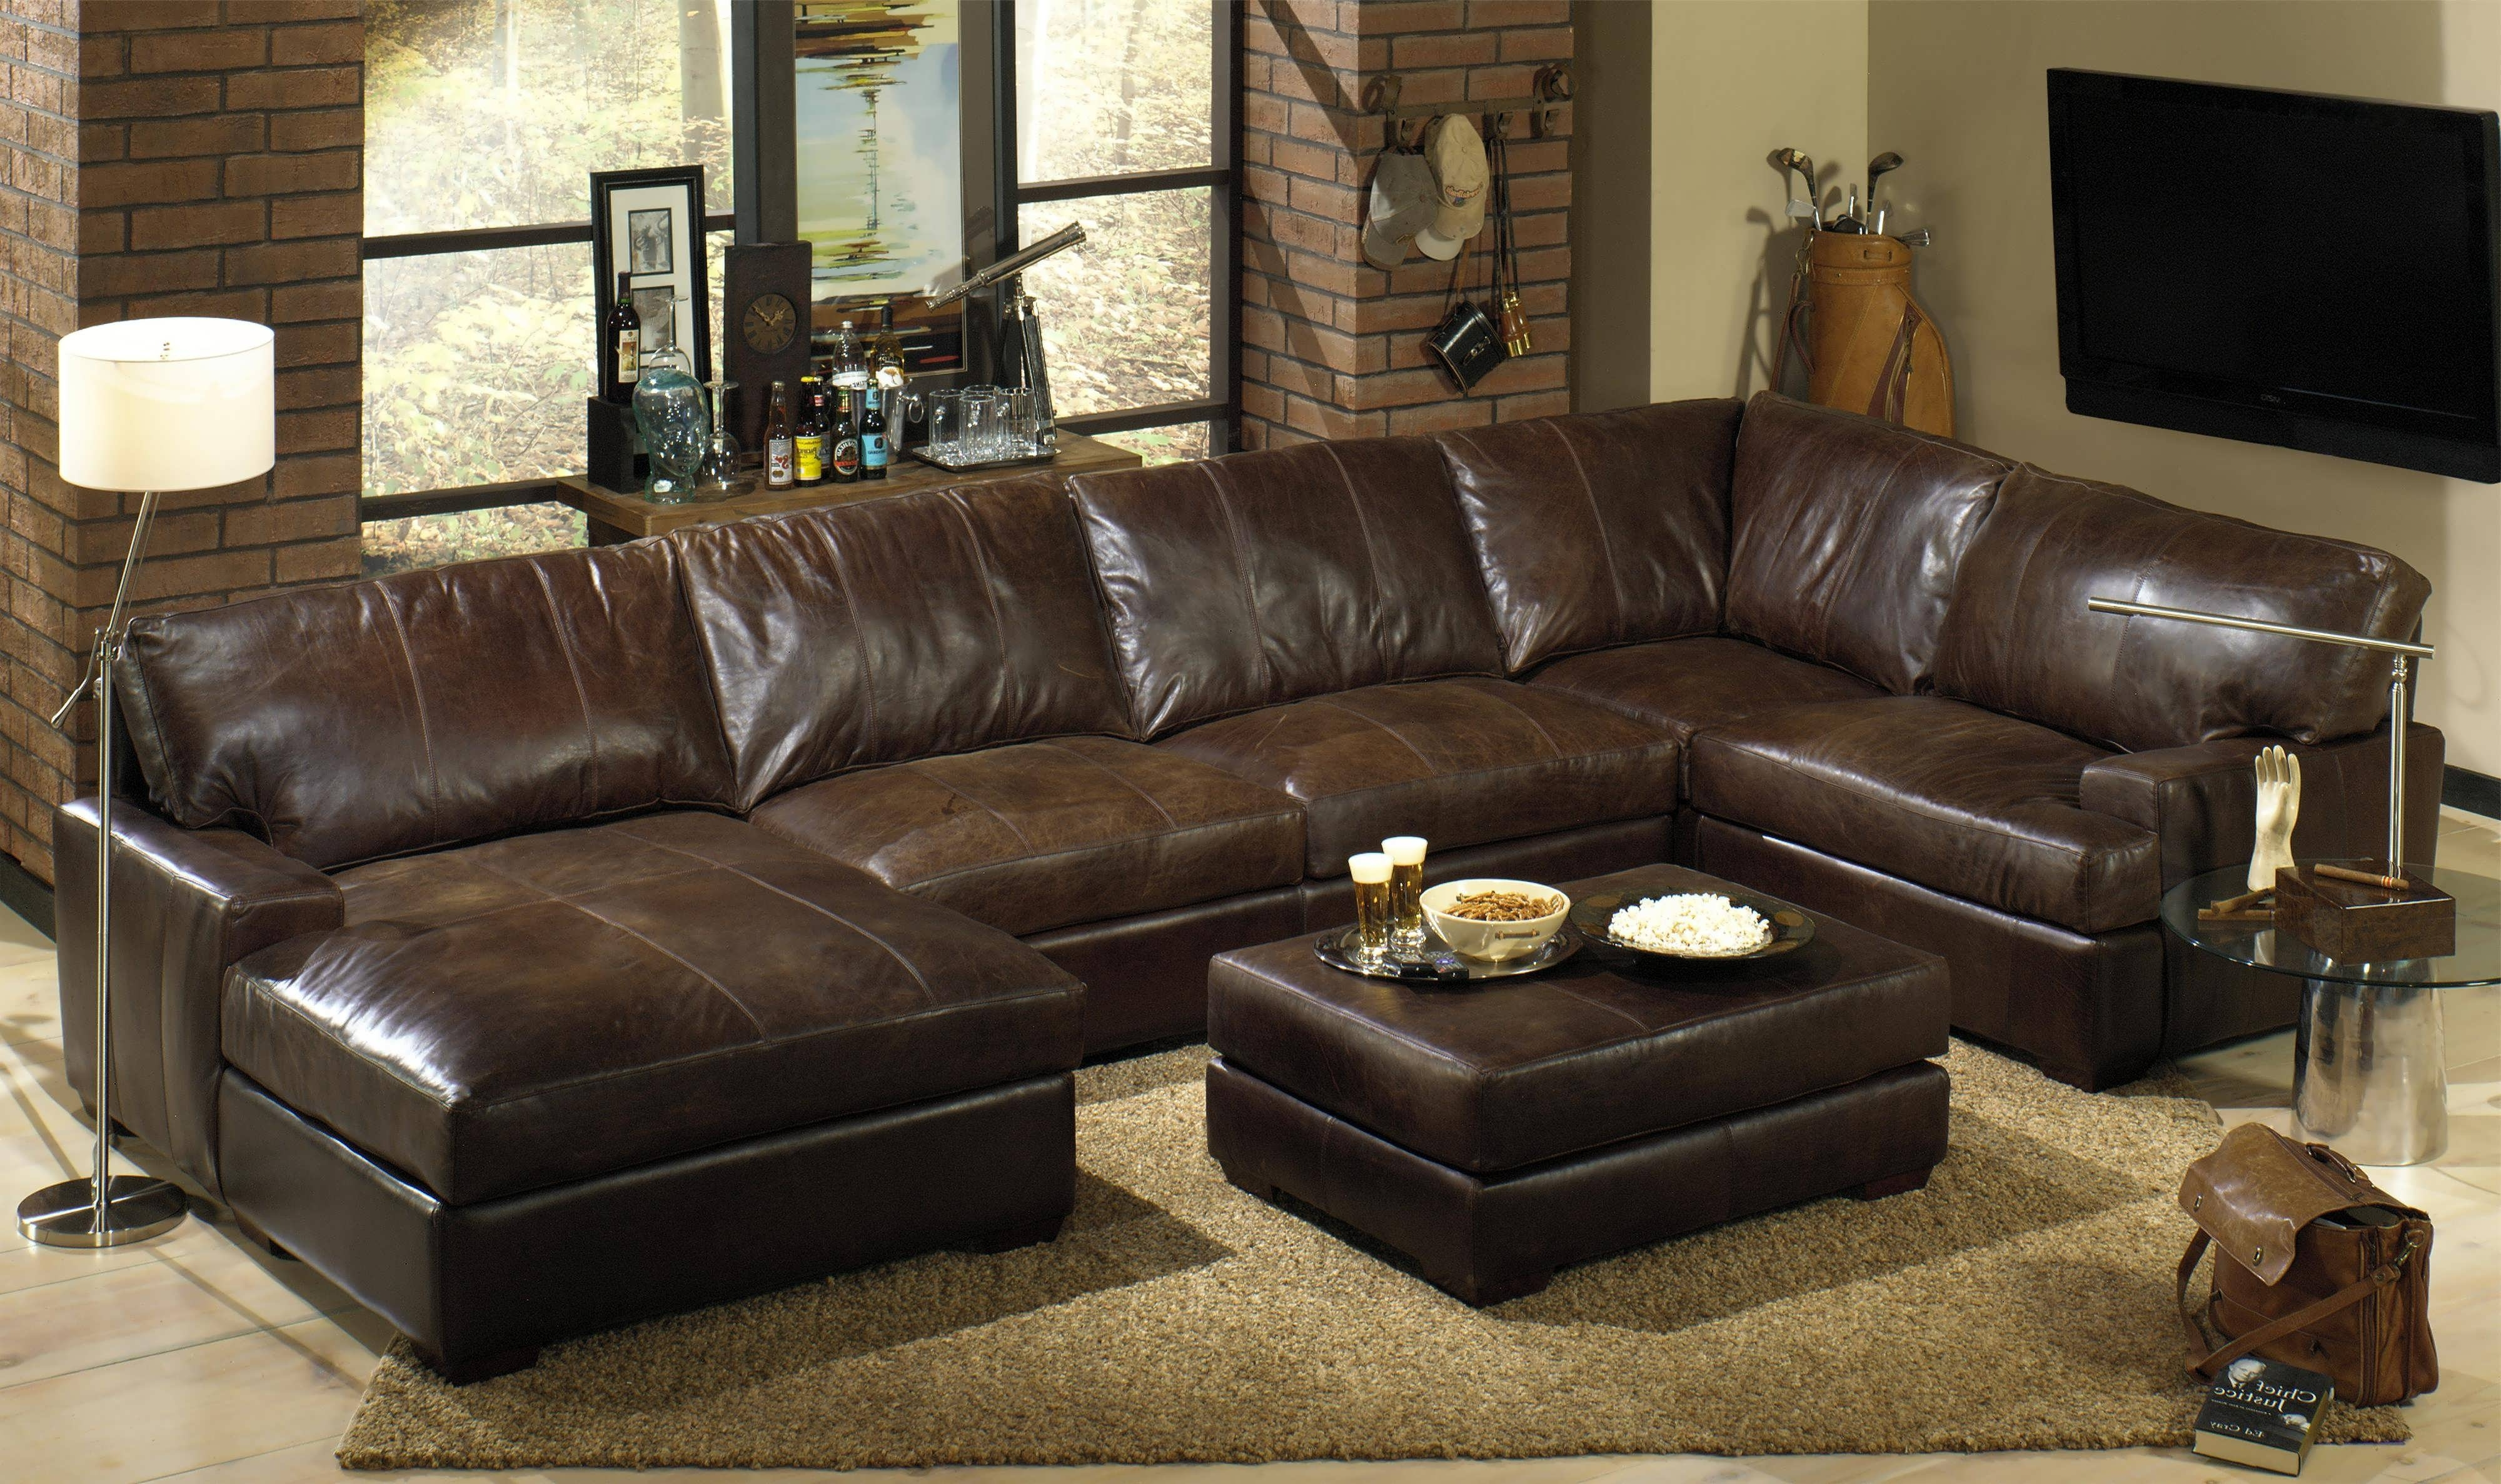 Sofa : Tan Sectional Couch Leather Sectional Sofa With Recliner Throughout Most Popular Leather Sectional Sleeper Sofas With Chaise (View 13 of 15)